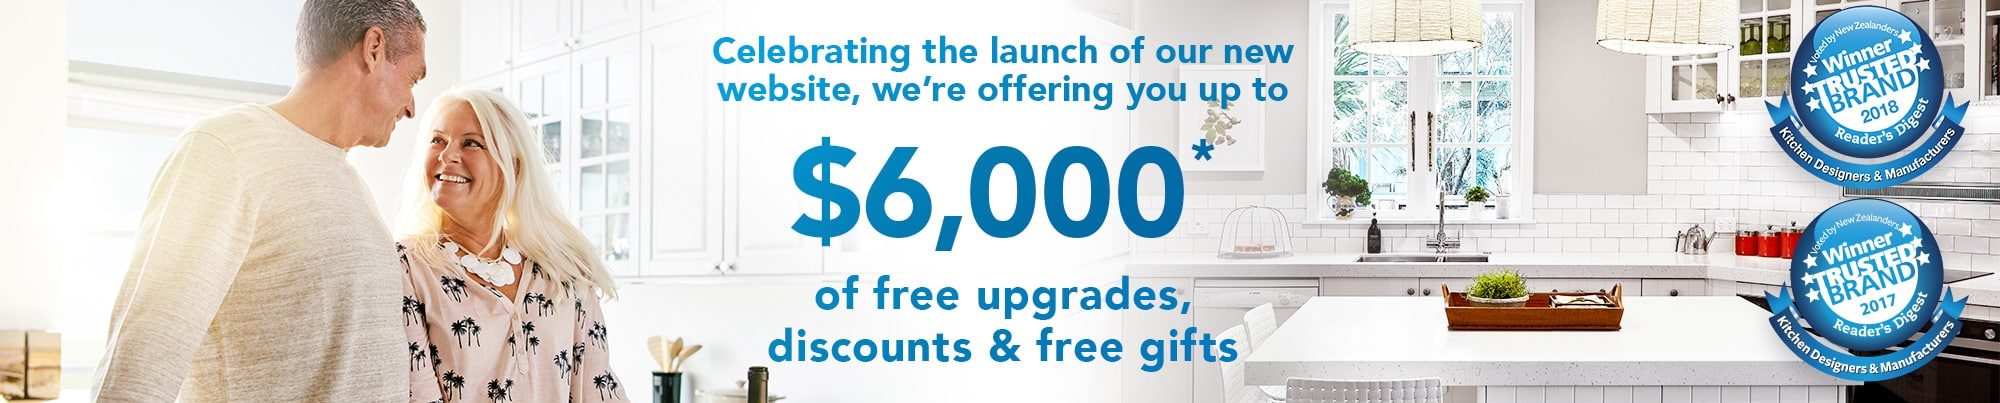 Up to $6,000 of upgrades, discounts and free gifts